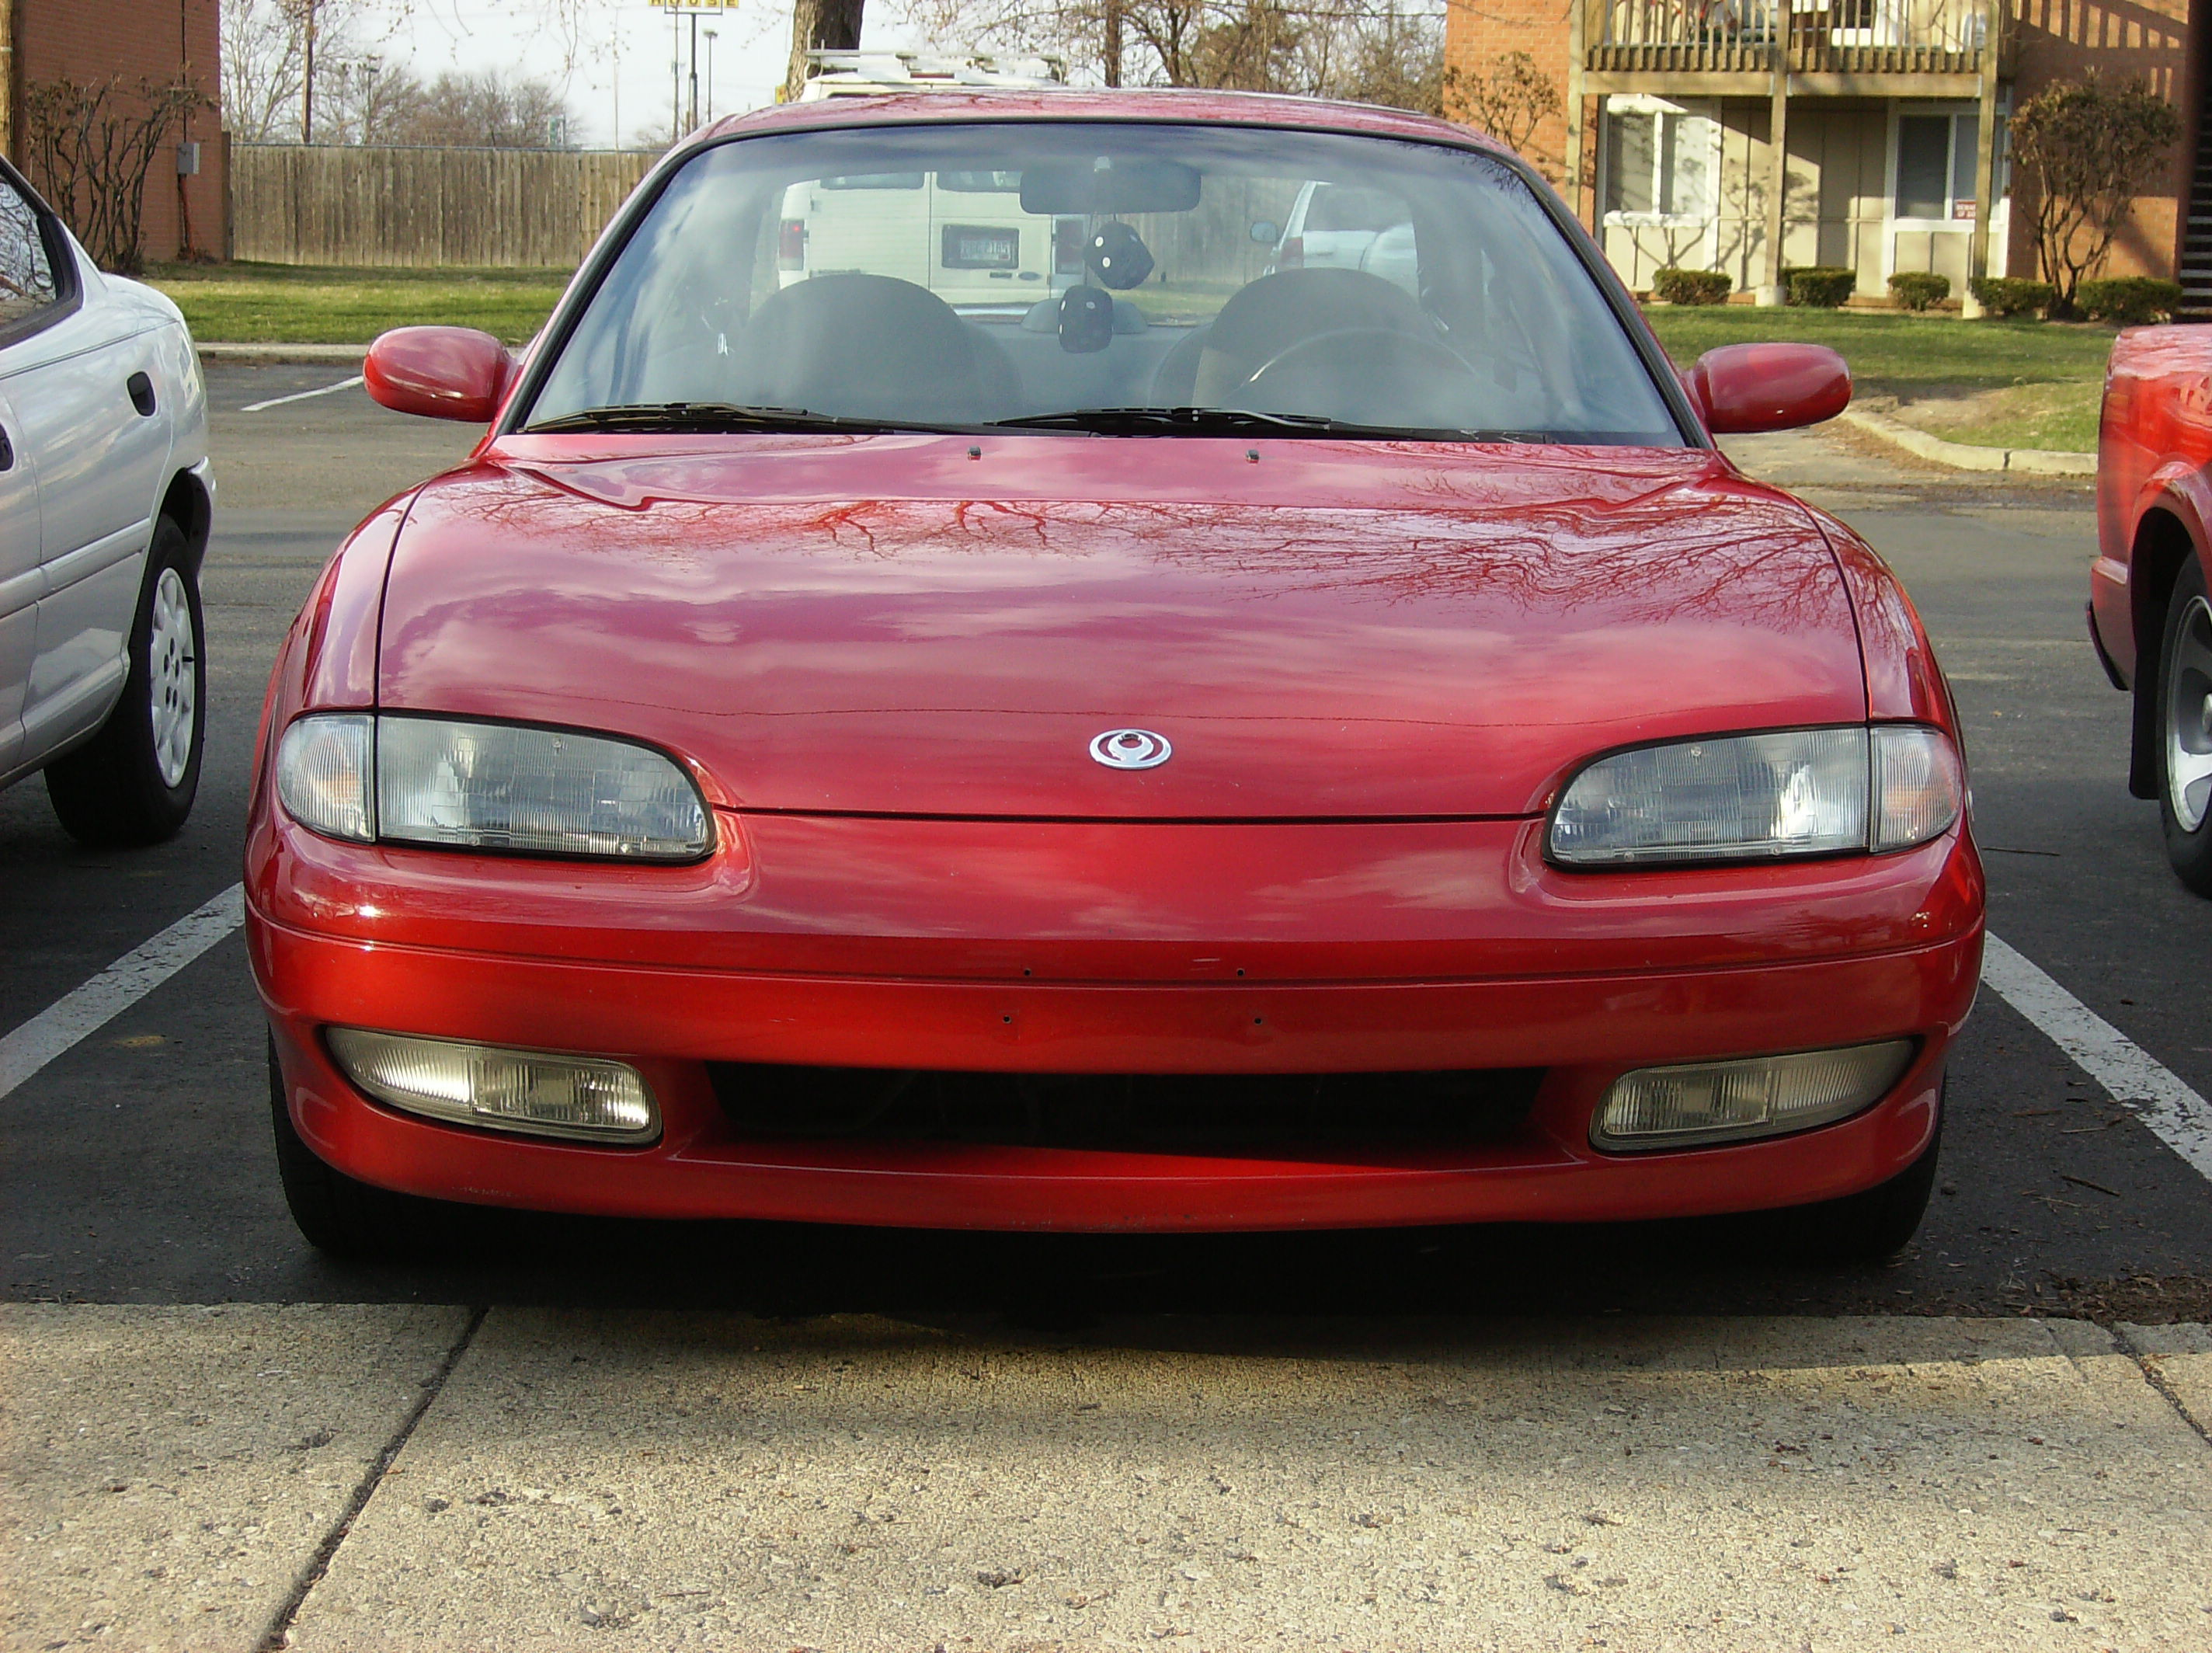 firefighter_hahn's 1993 Mazda MX-6